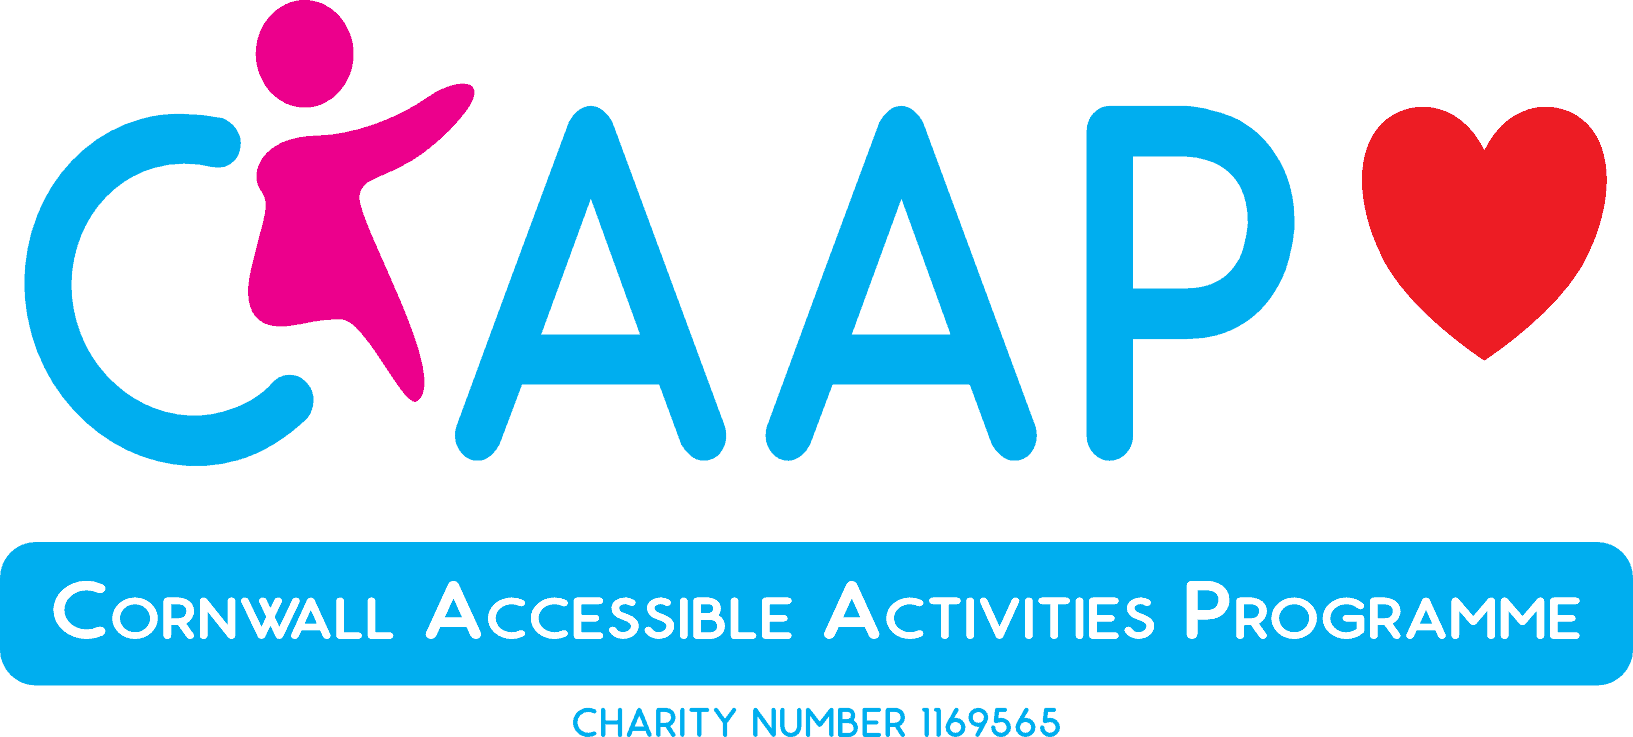 Cornwall Accessible Activities Programme